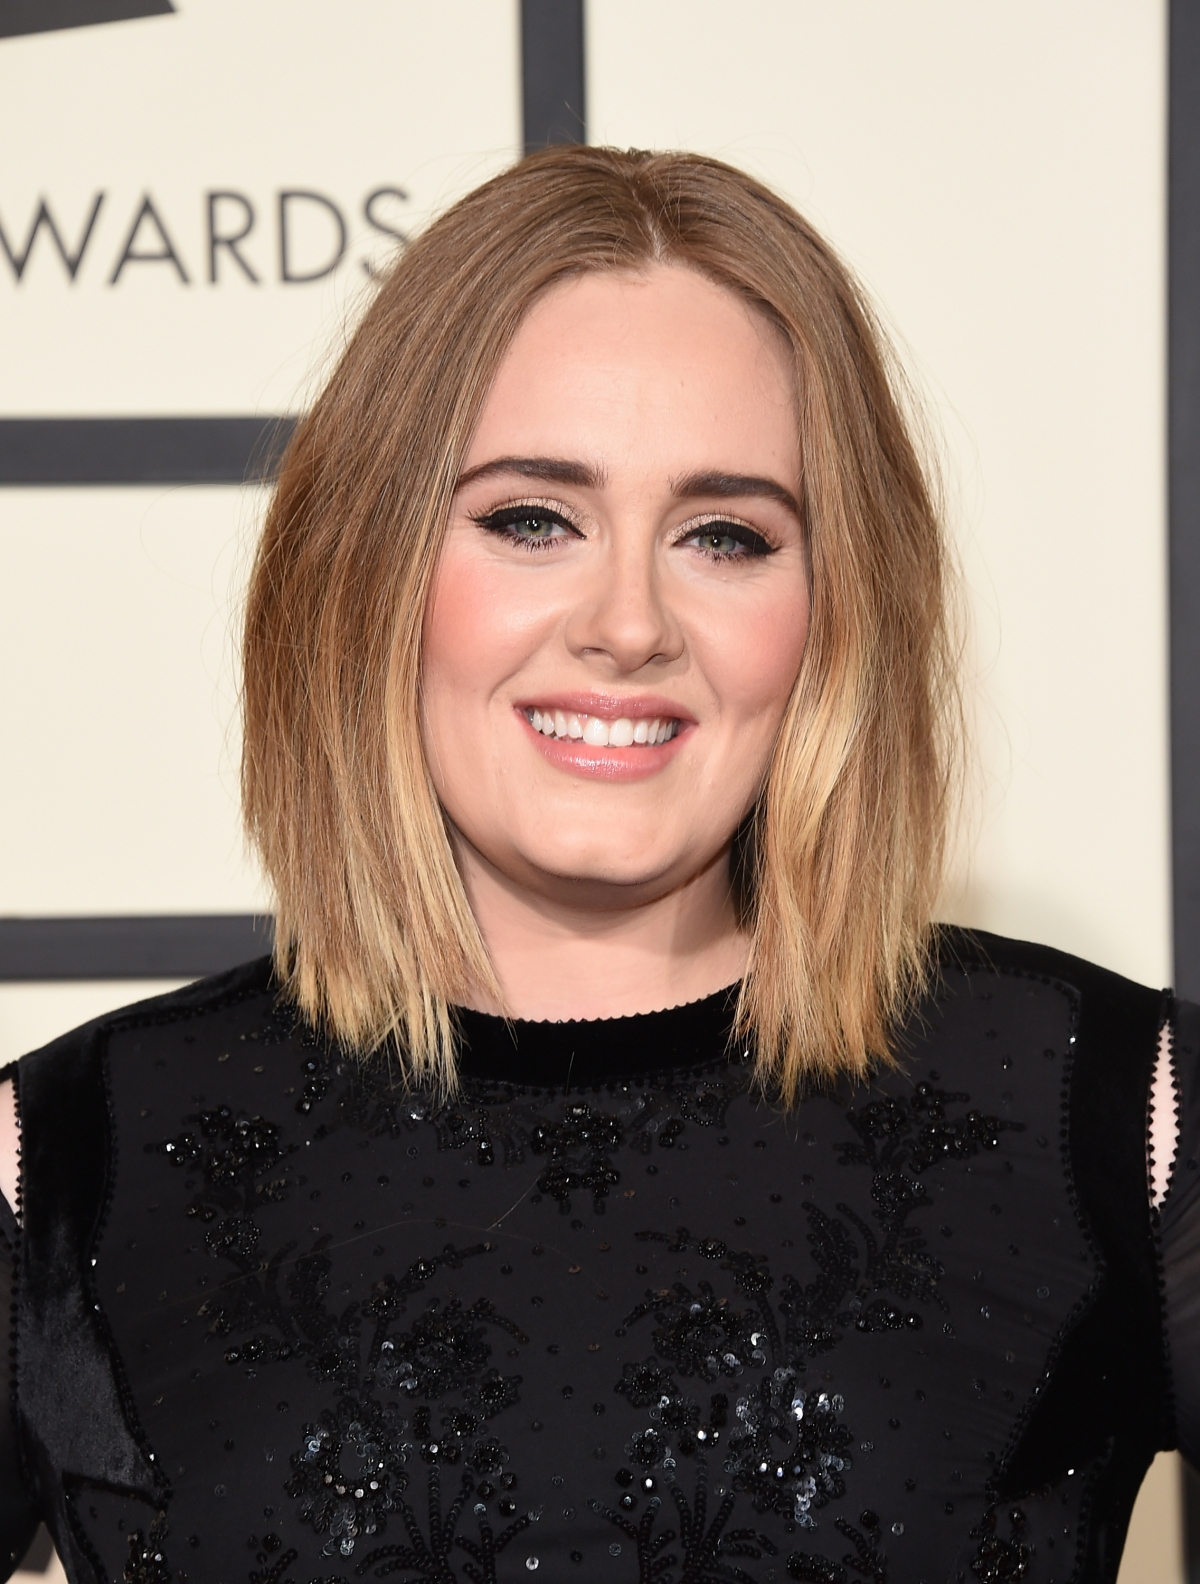 Brit Awards 2016 winners list: Adele and James Bay lead ...